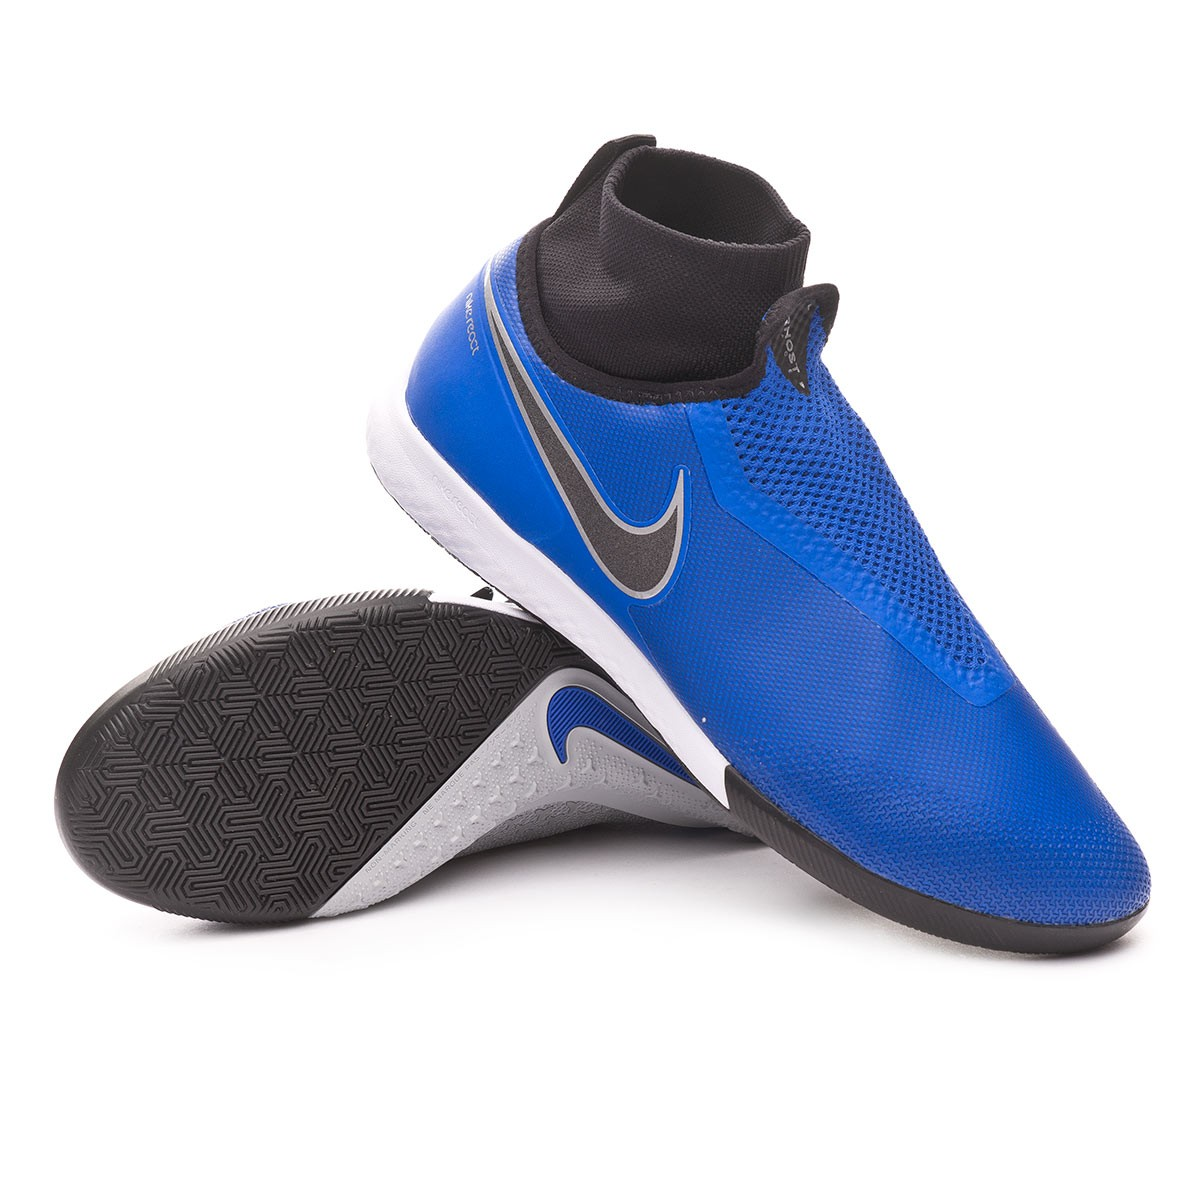 a5501c8f8 Futsal Boot Nike React Phantom Vision Pro DF IC Racer blue-Black ...